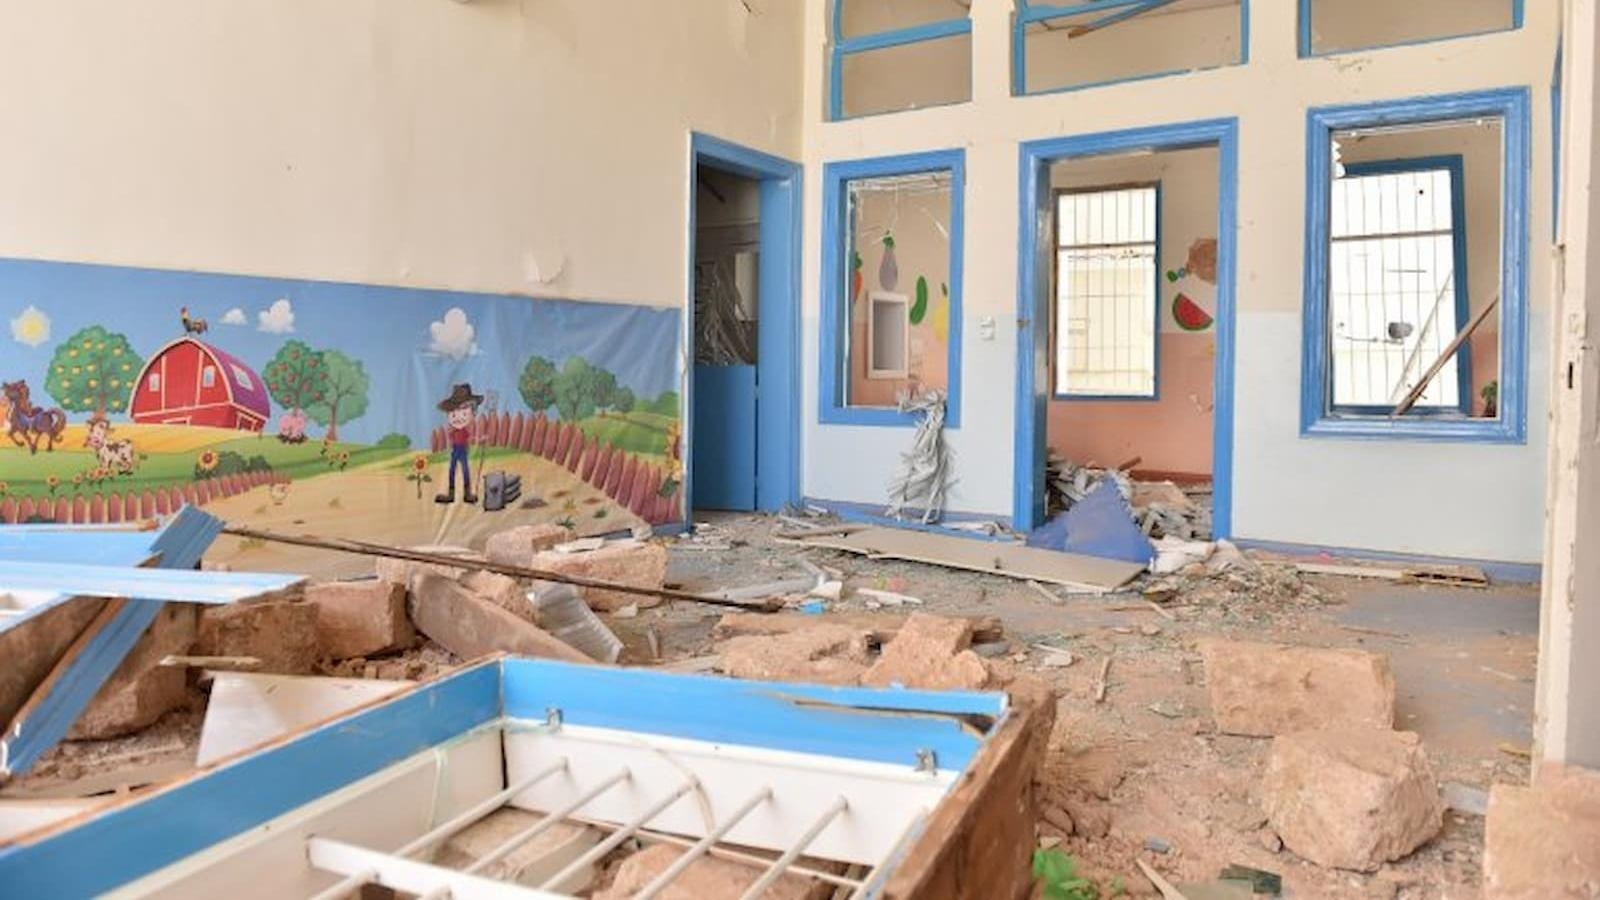 UNESCO, EAA announce $10 million to rebuild damaged schools in Beirut